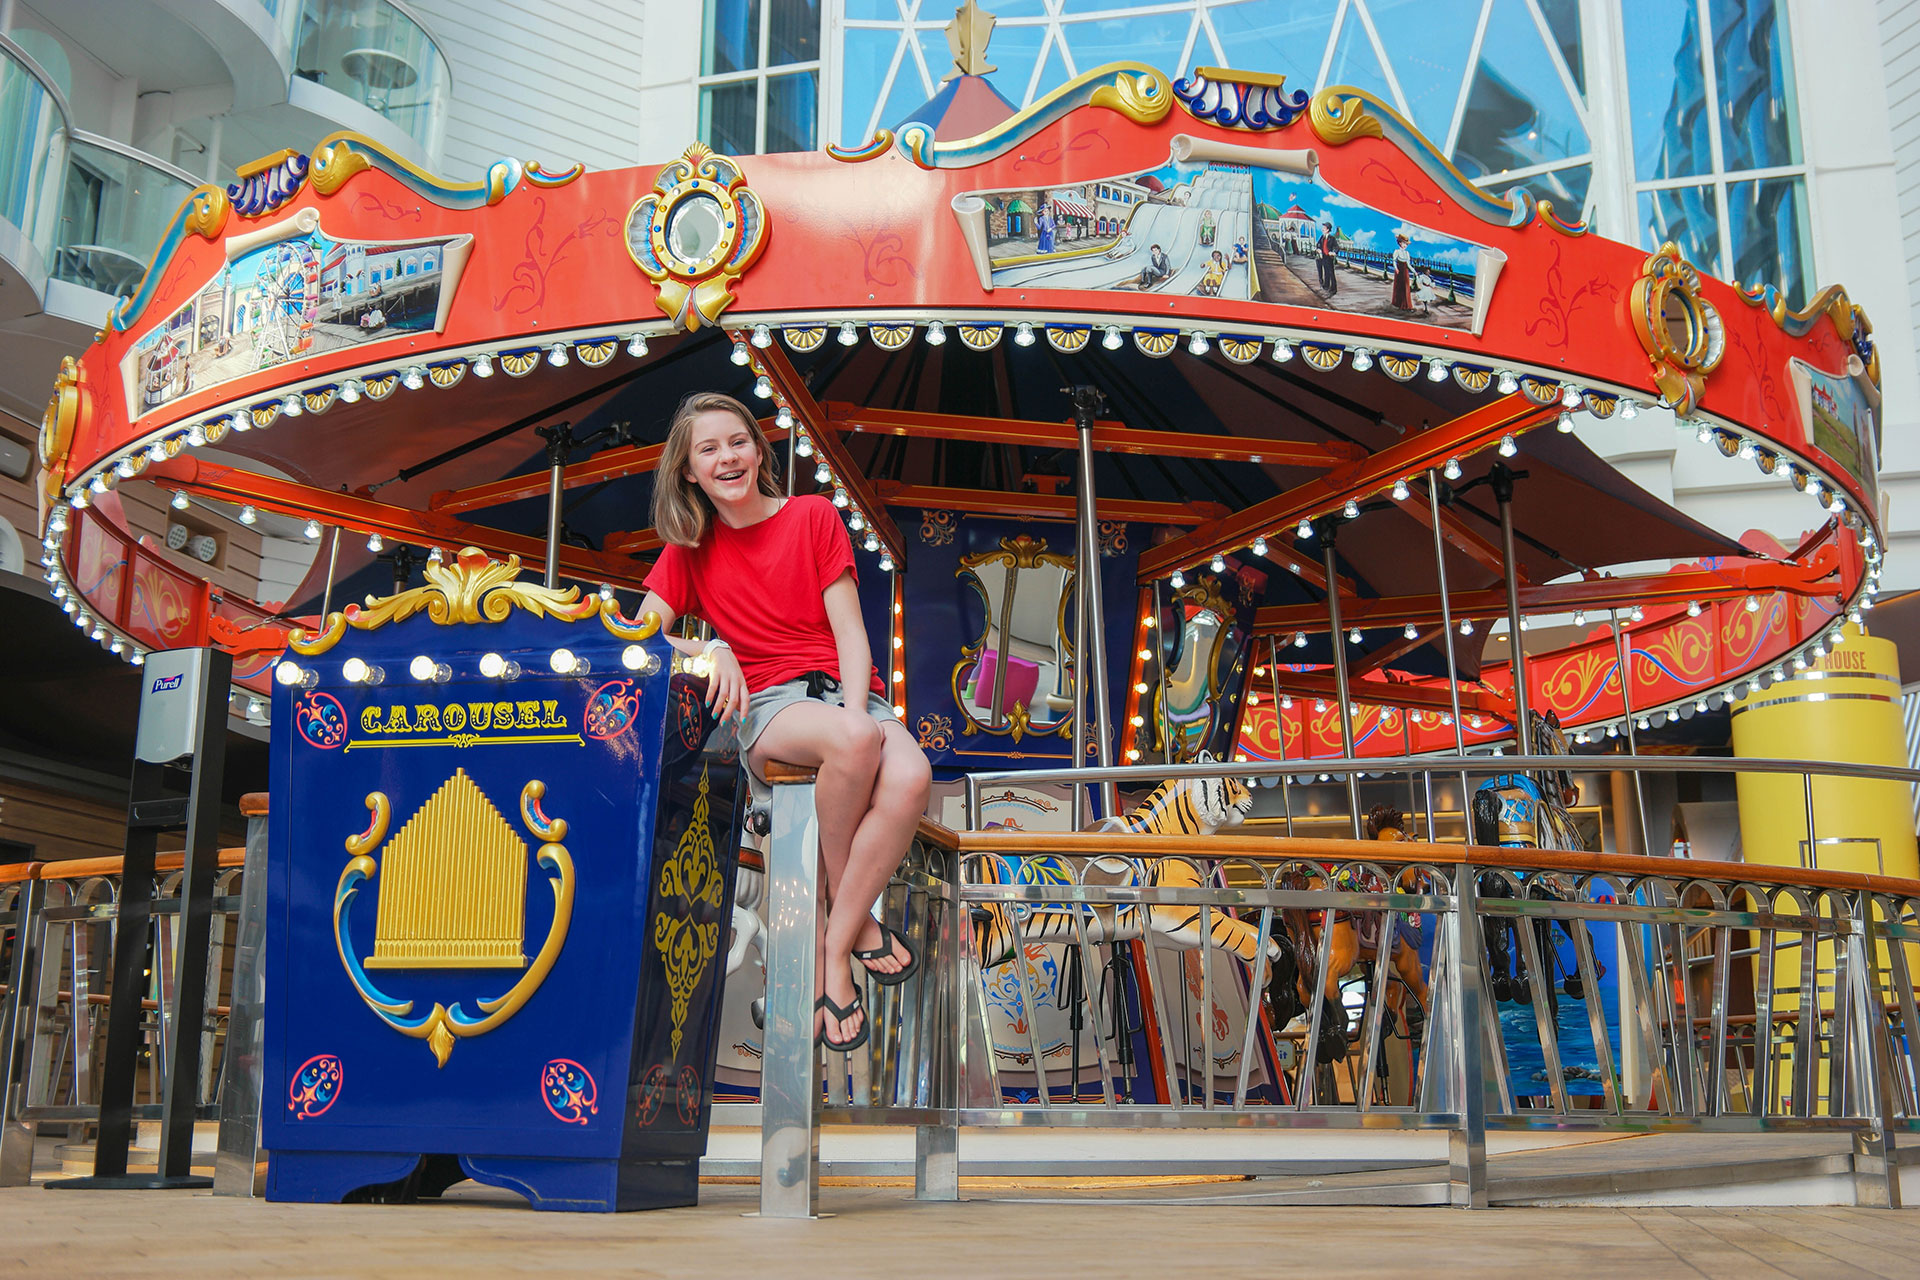 Teen Girl in Front of Carousel on Royal Caribbean's Symphony of the Seas; Courtesy of Jeff Bogle